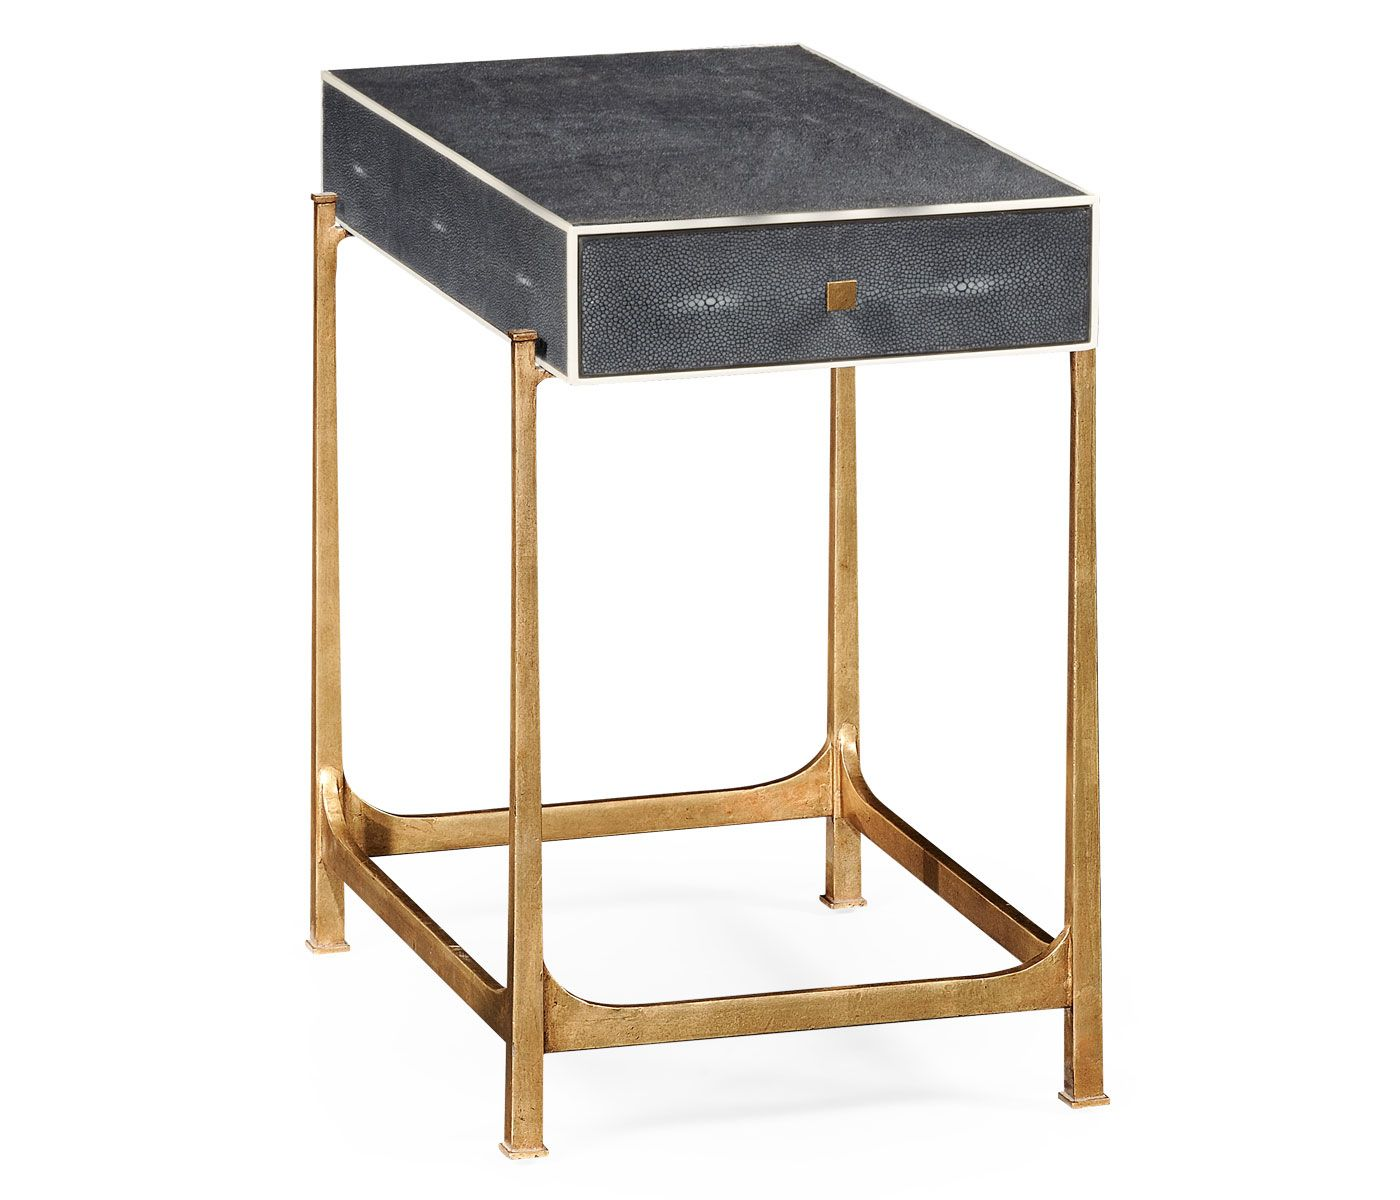 Anthracite Faux Shagreen U0026 Gilded Iron Side Table